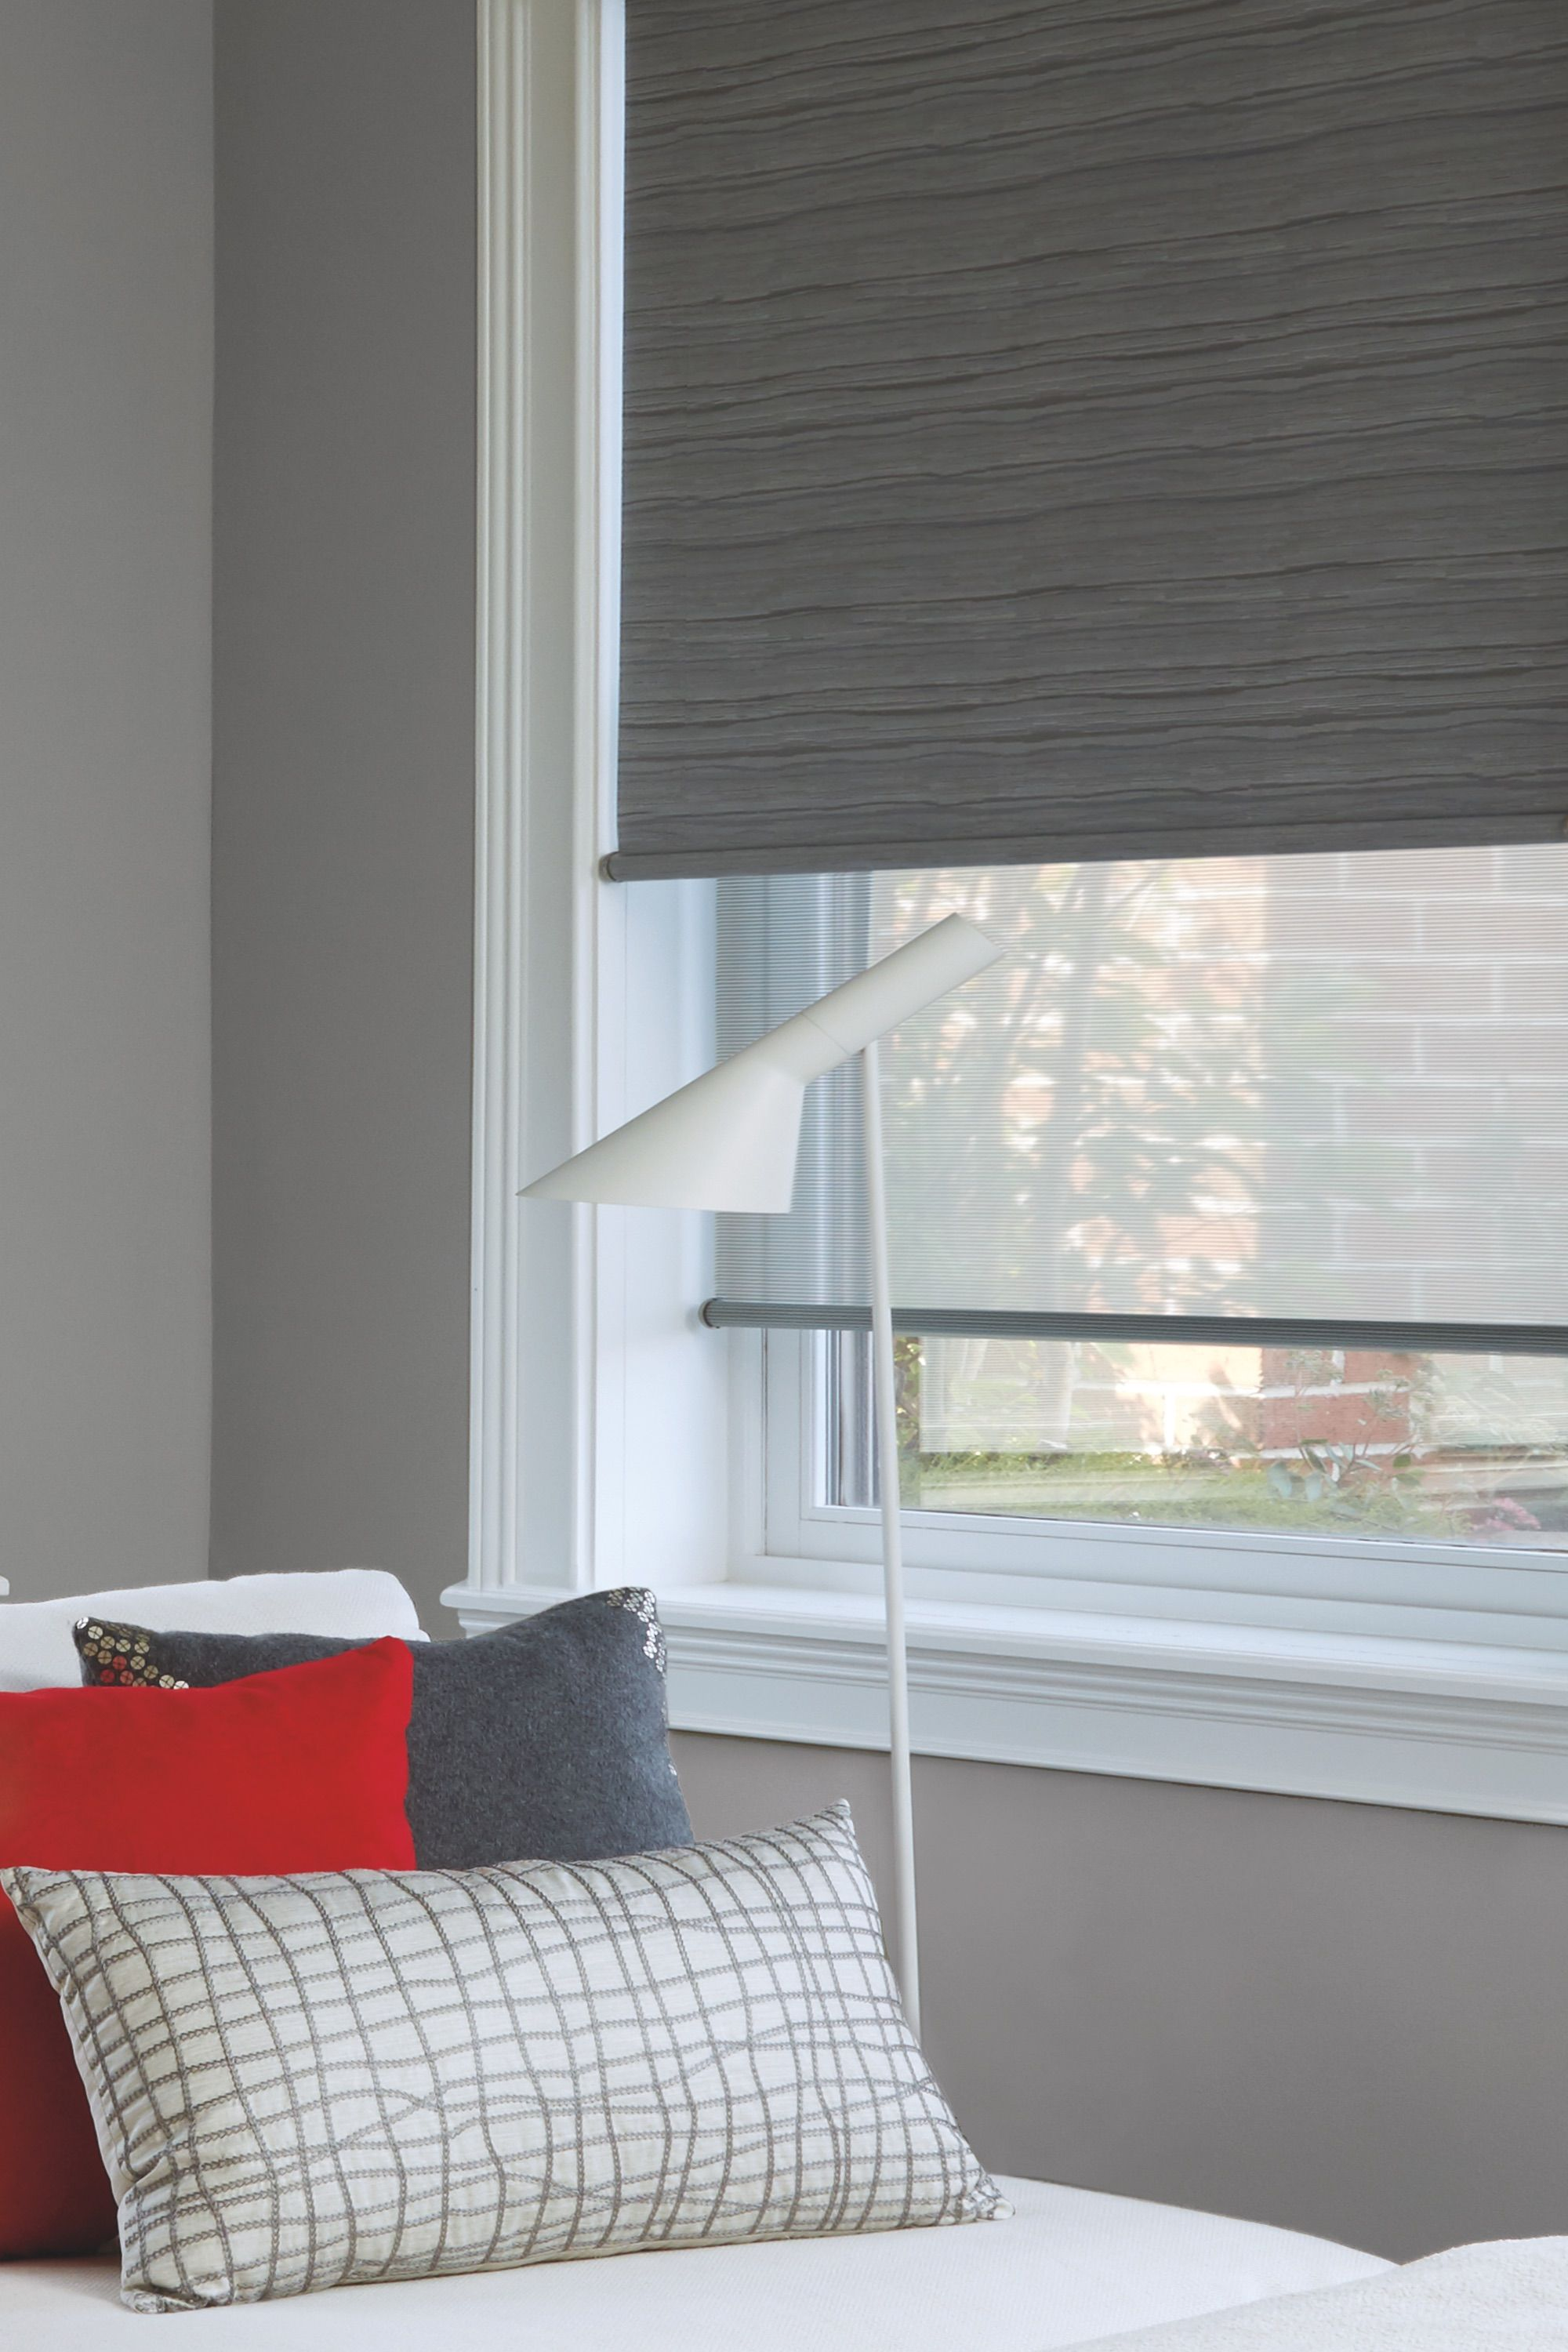 If You Love The View Through Of Screen Shades But Want Privacy At